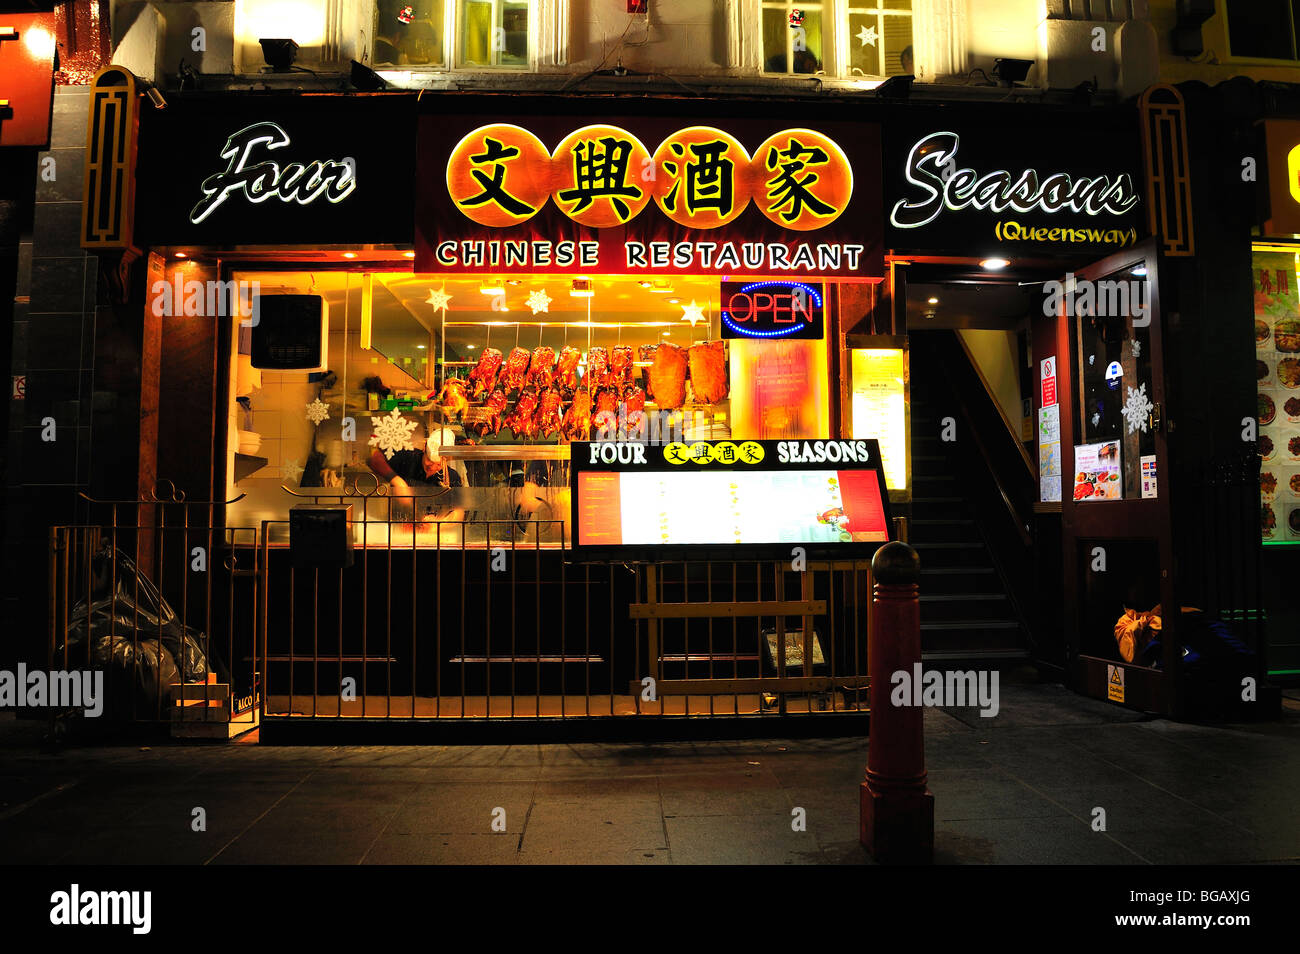 Four Seasons Restaurant in China Town, London - Stock Image